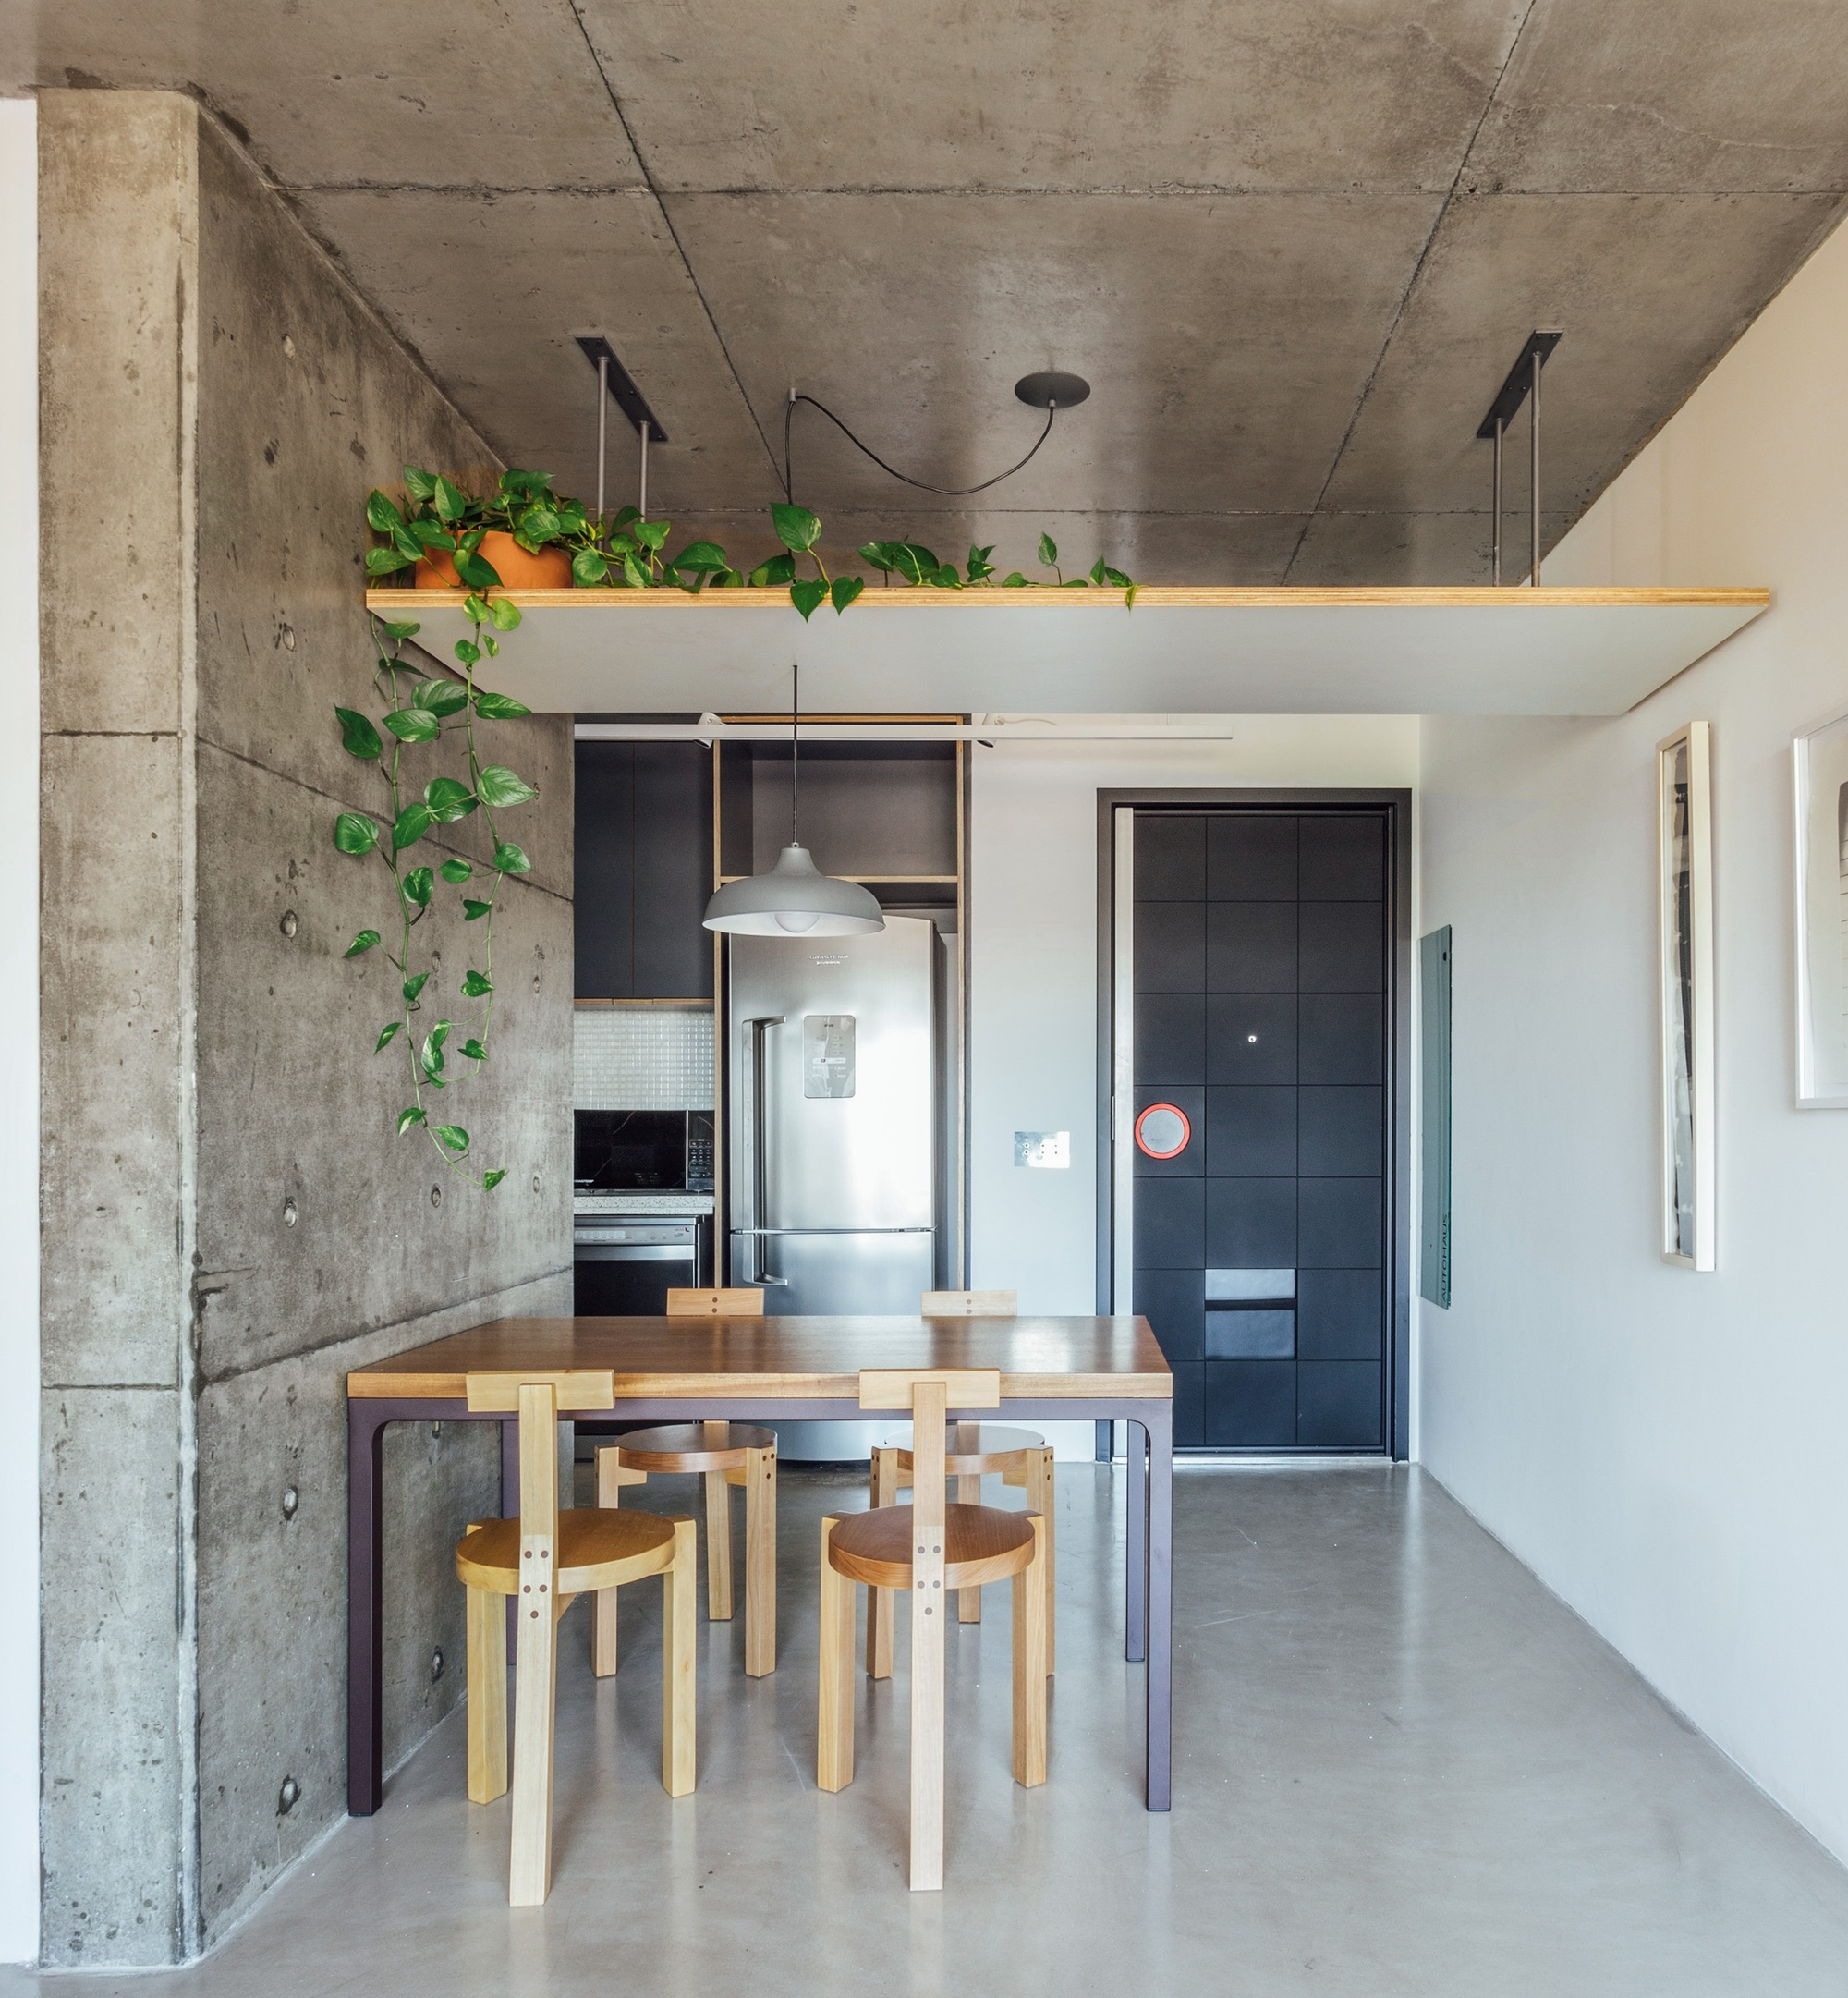 Mini Spa Da Casa aj apartment / coa associados | archdaily